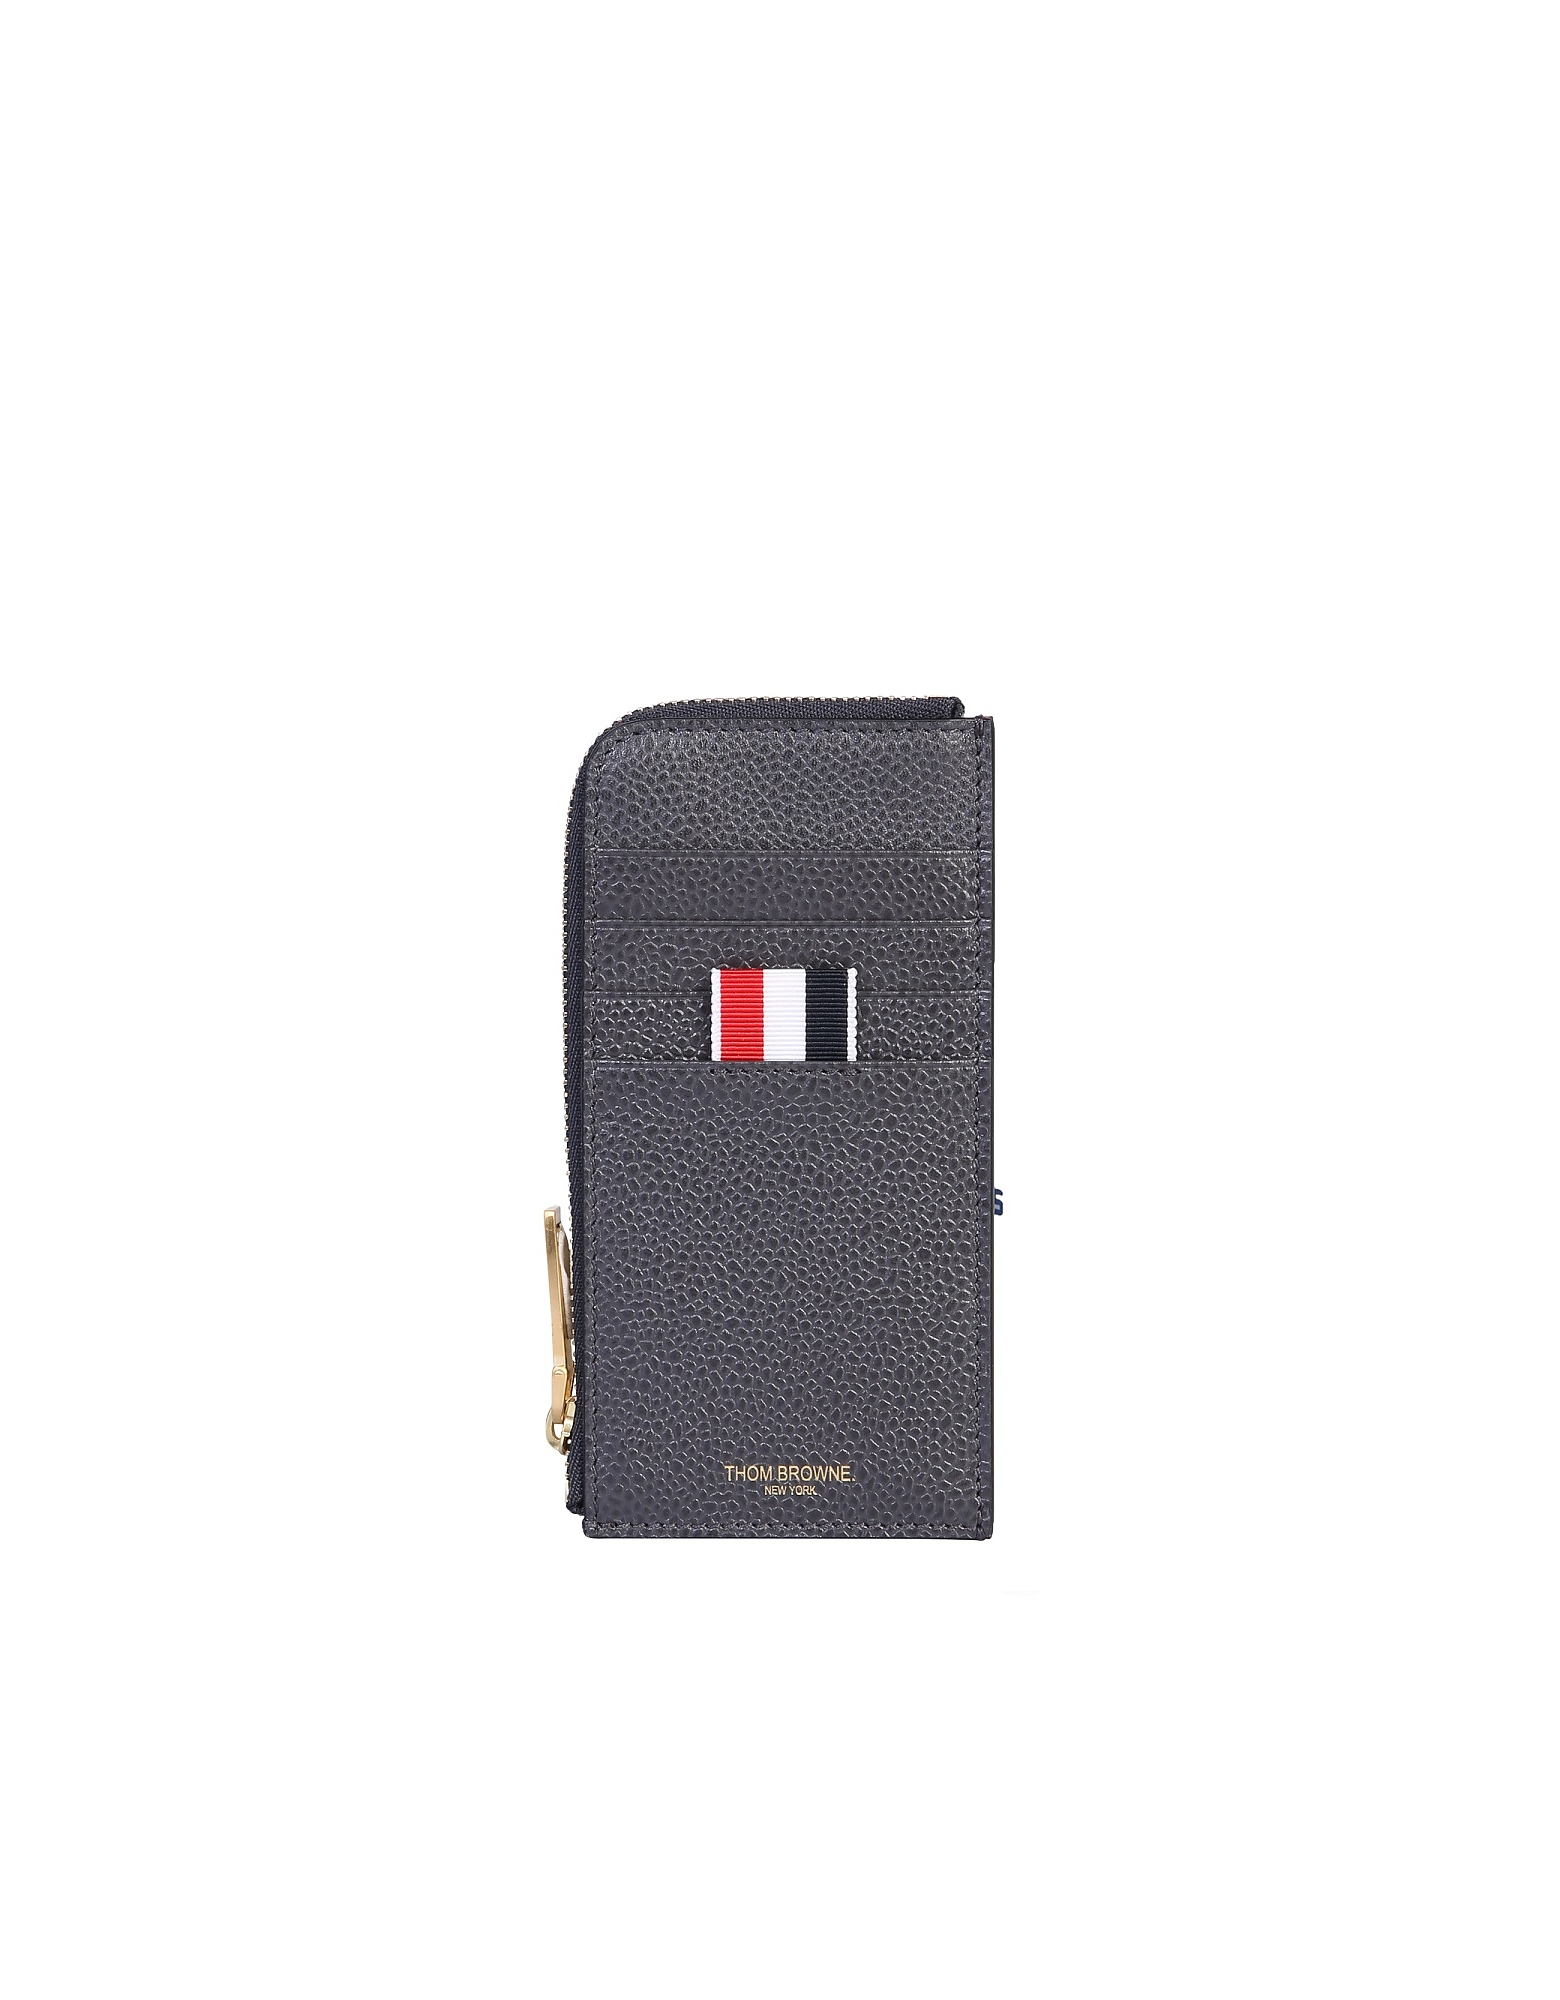 Thom Browne Designer Men's Bags, Zip Wallet